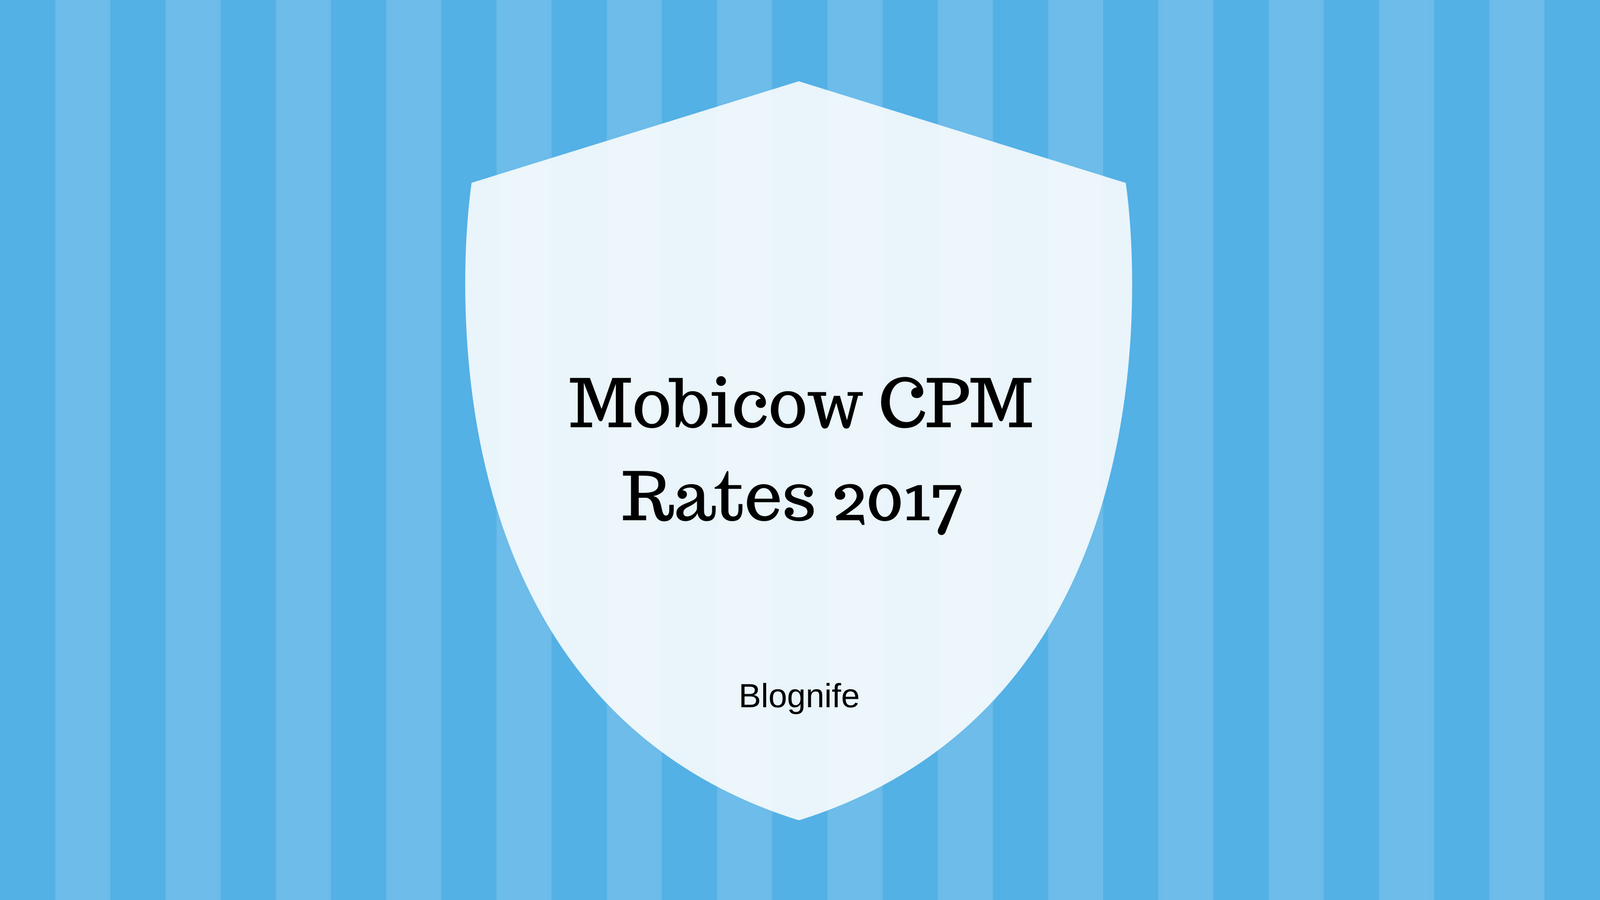 Mobicow CPM Rates 2020